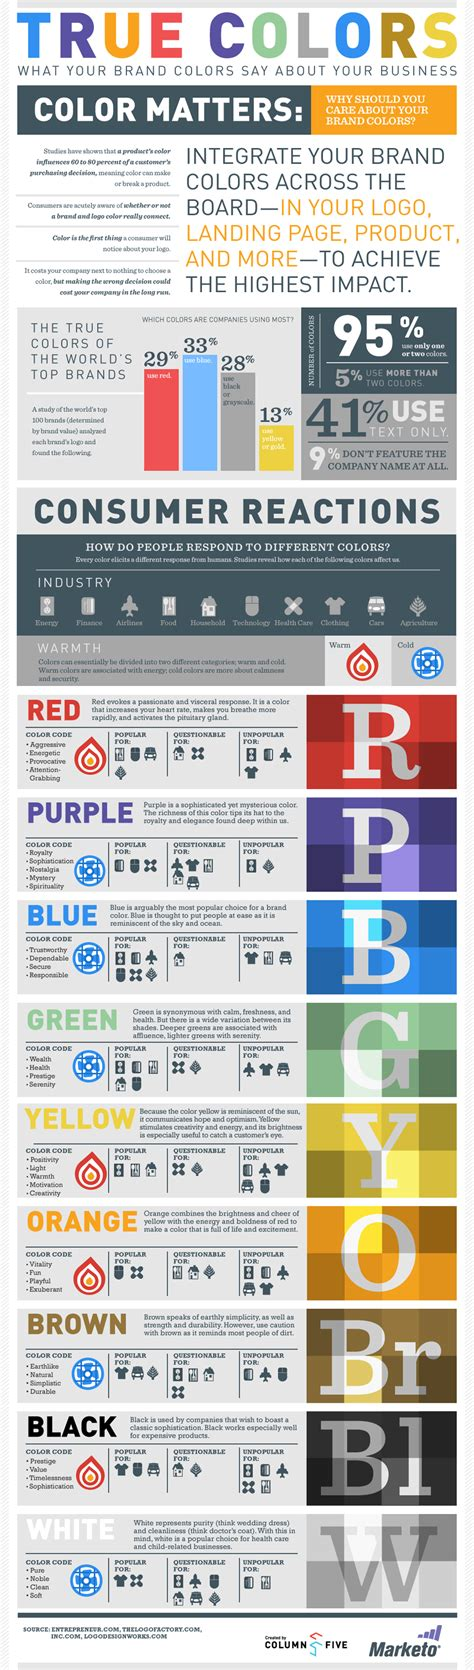 color brand what your brand colors say about your business